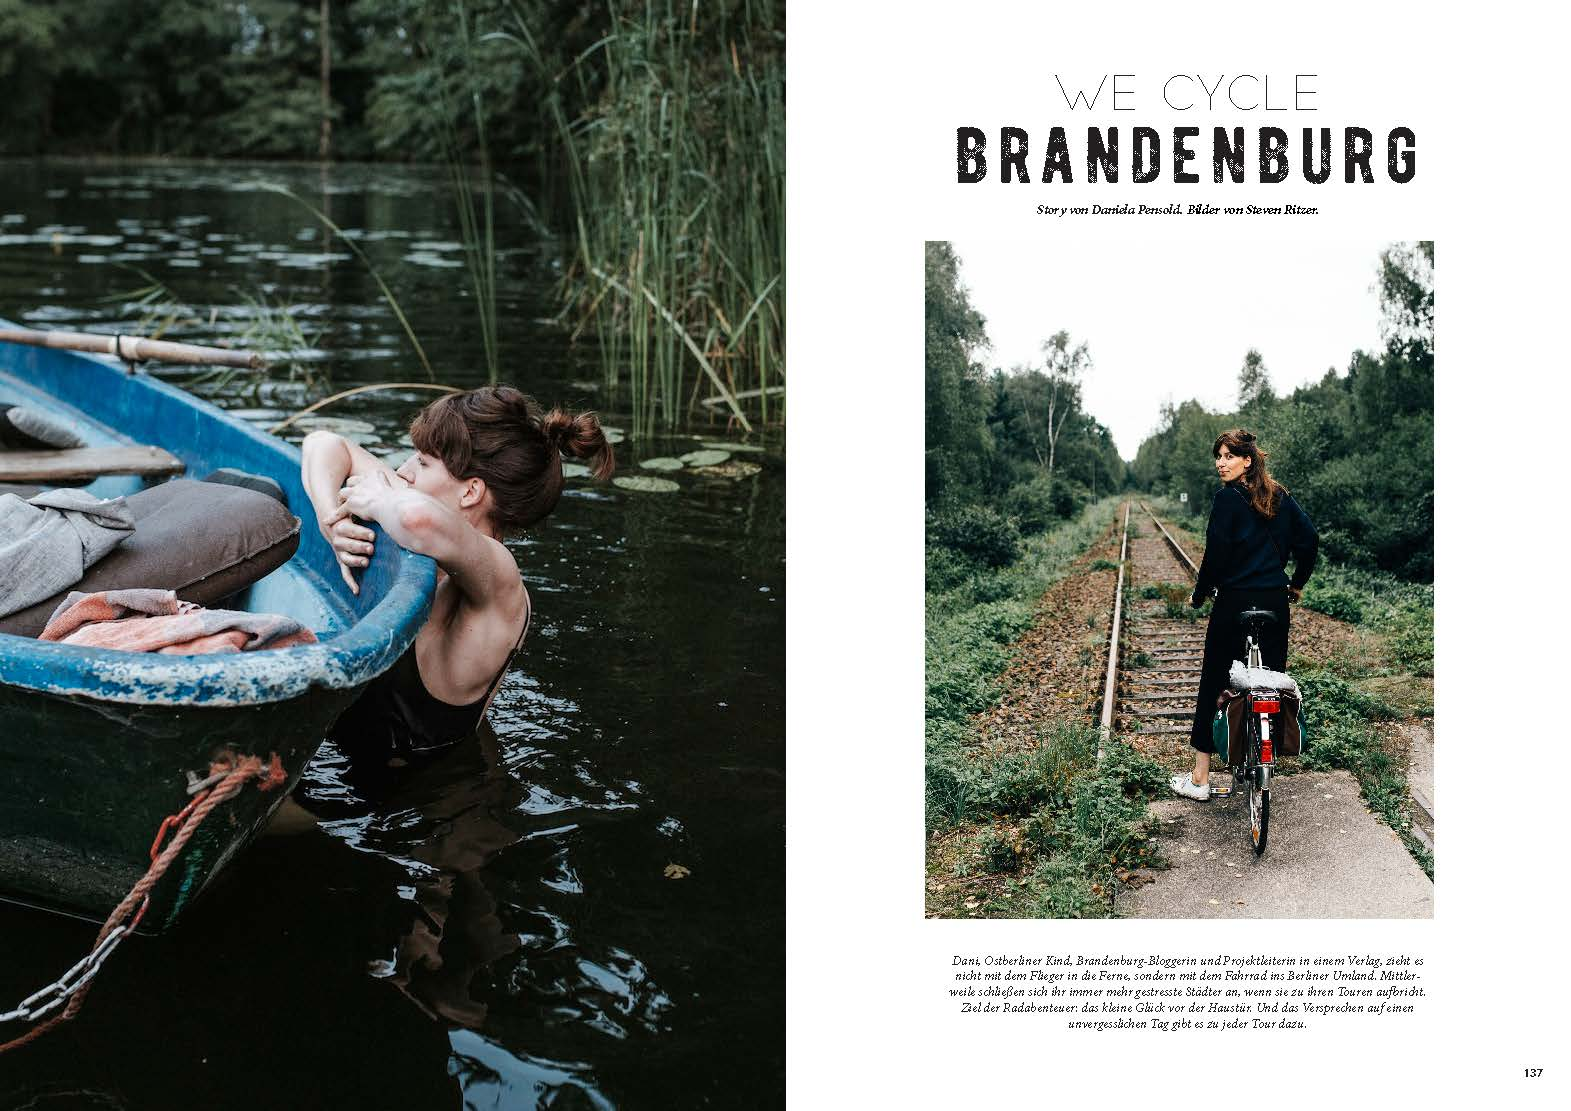 01 The_Fernweh_Collective_Wild_Hearts_We_Cycle_Brandenburg.jpg